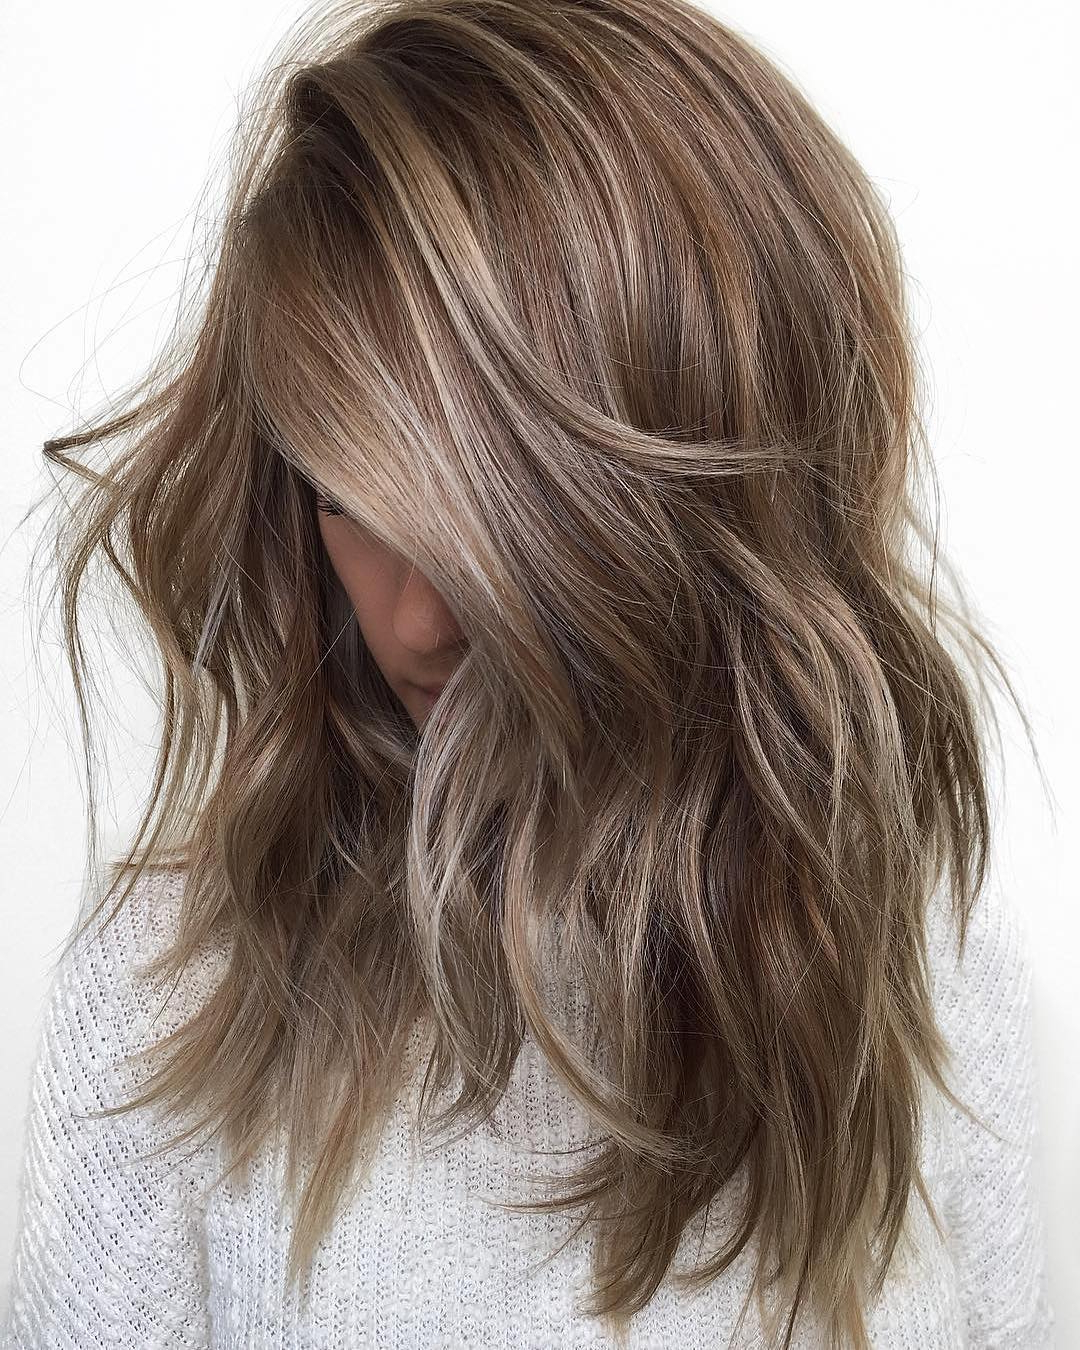 10 Medium Length Hair Color Ideas 2019 Regarding Most Up To Date Gray Medium Hairstyles (View 3 of 20)